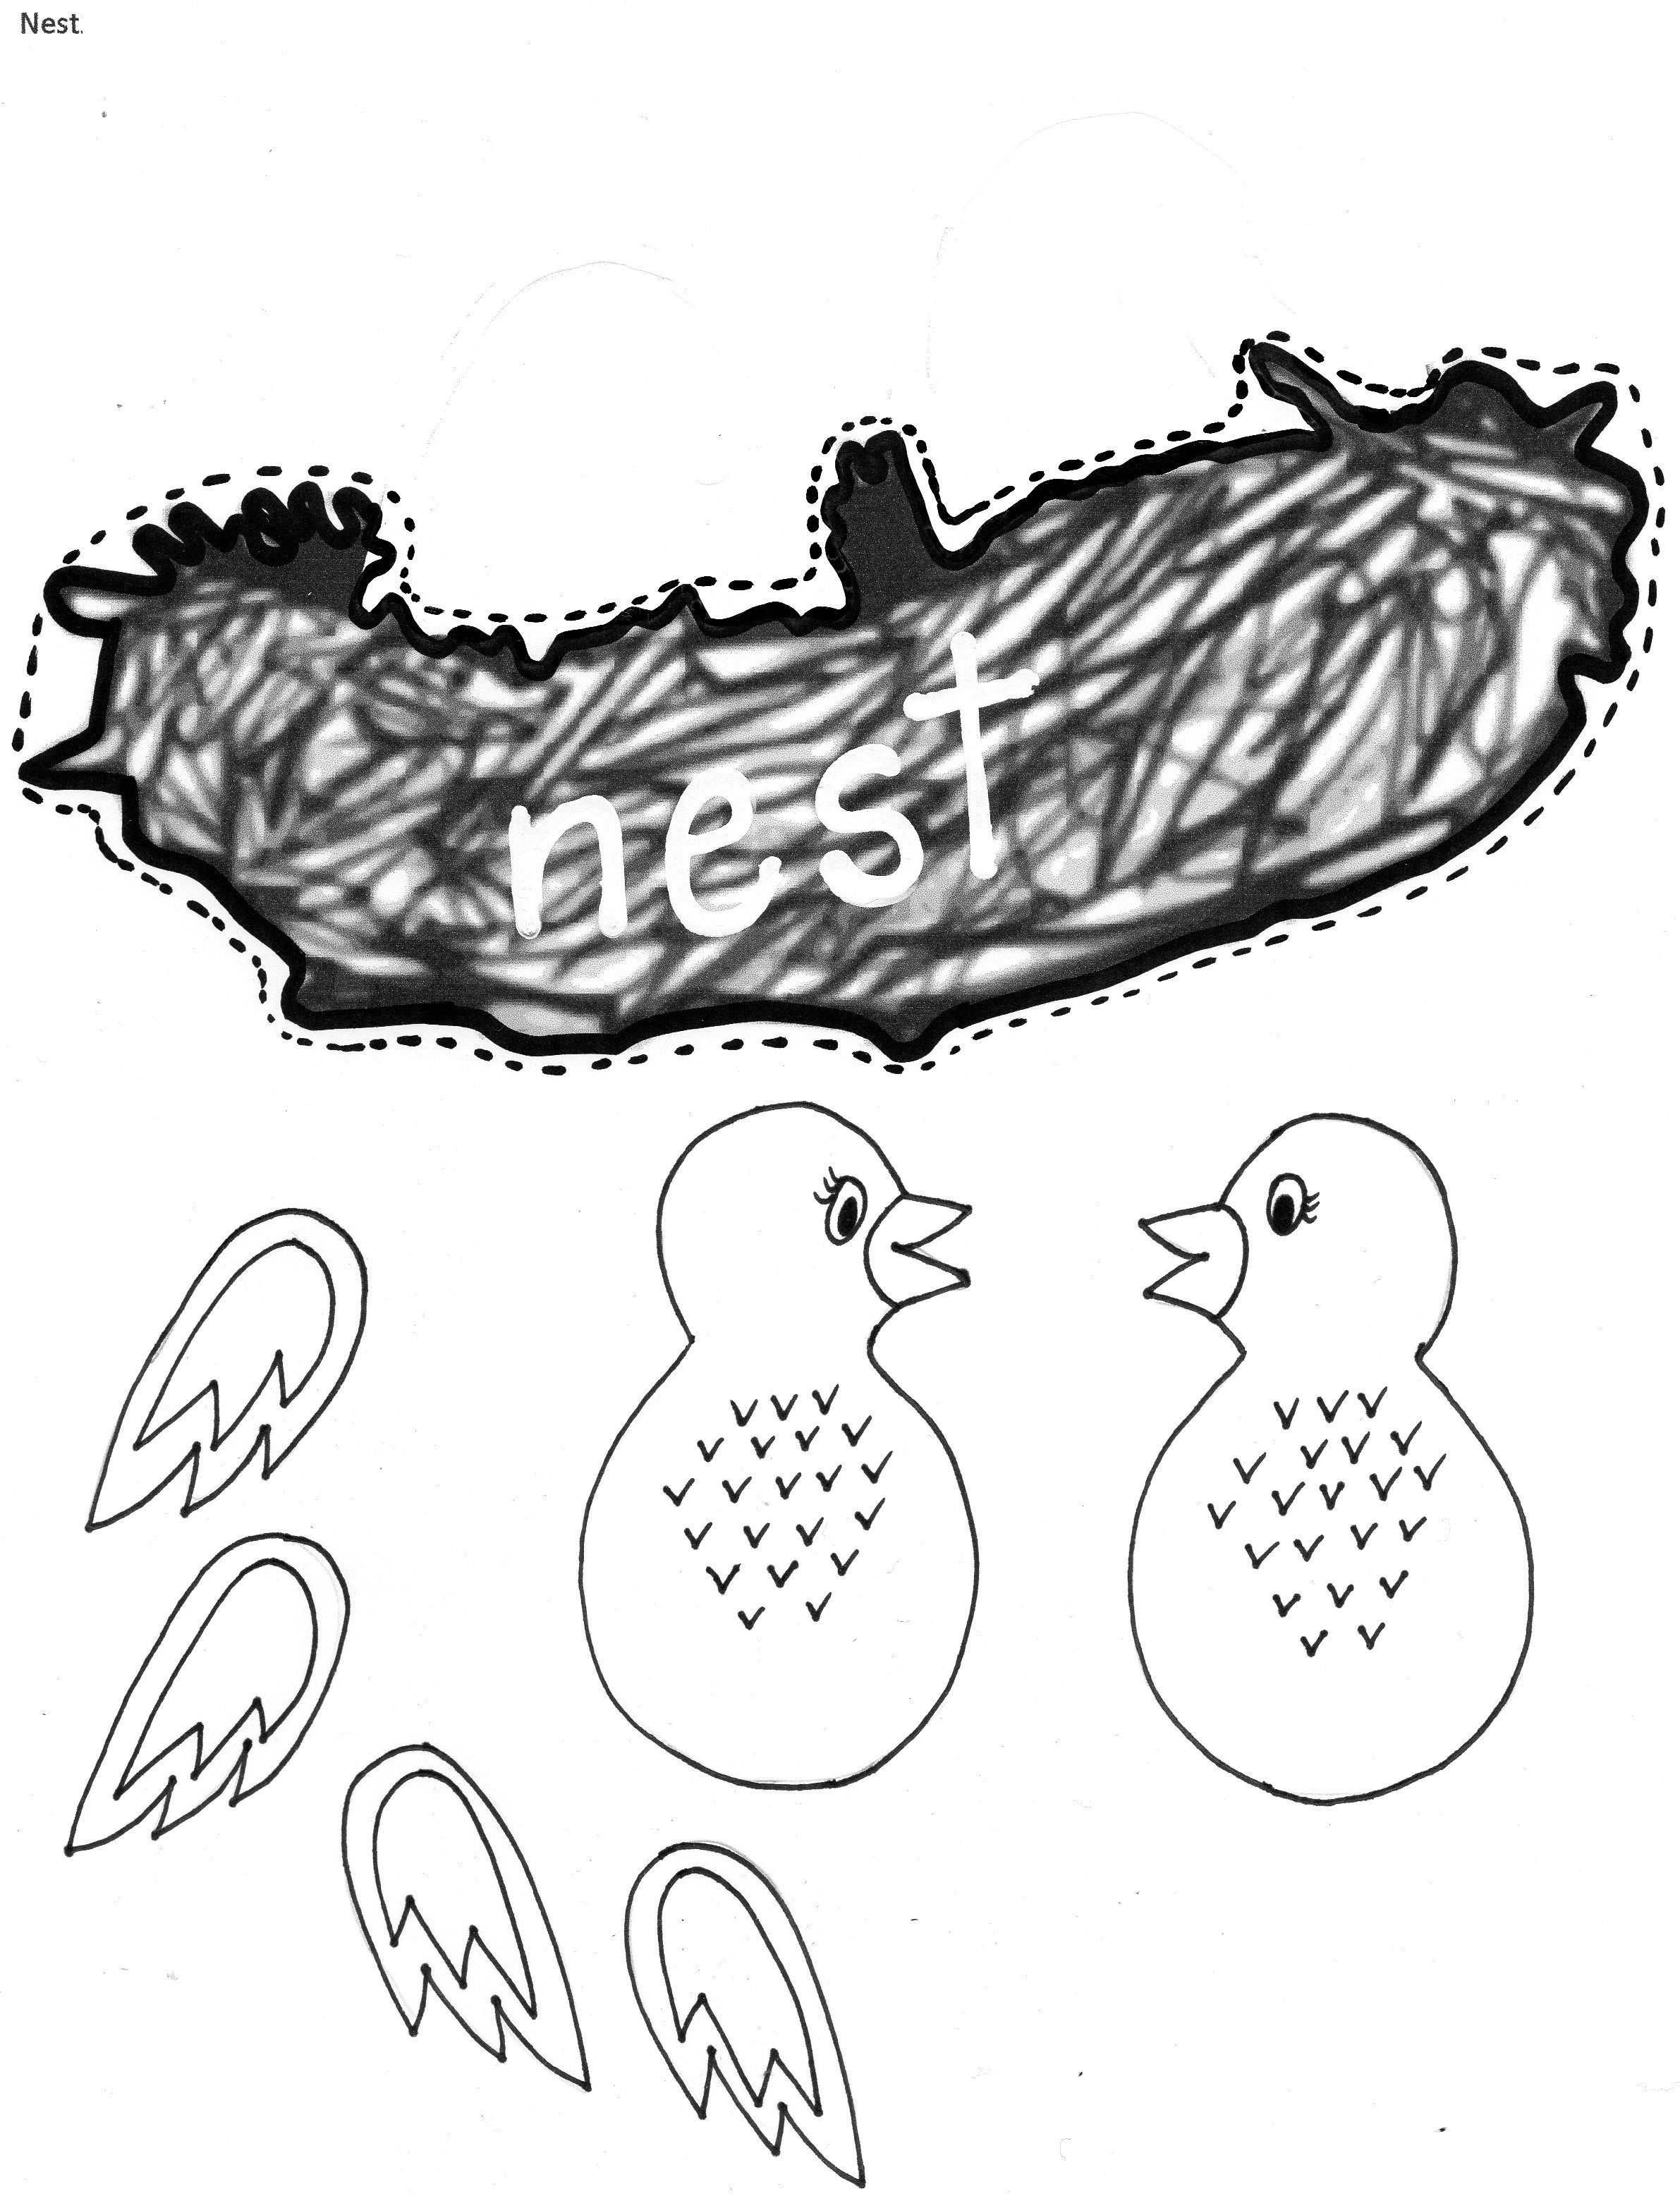 Nn nest craft activity for Letter of the Week. Baby birds